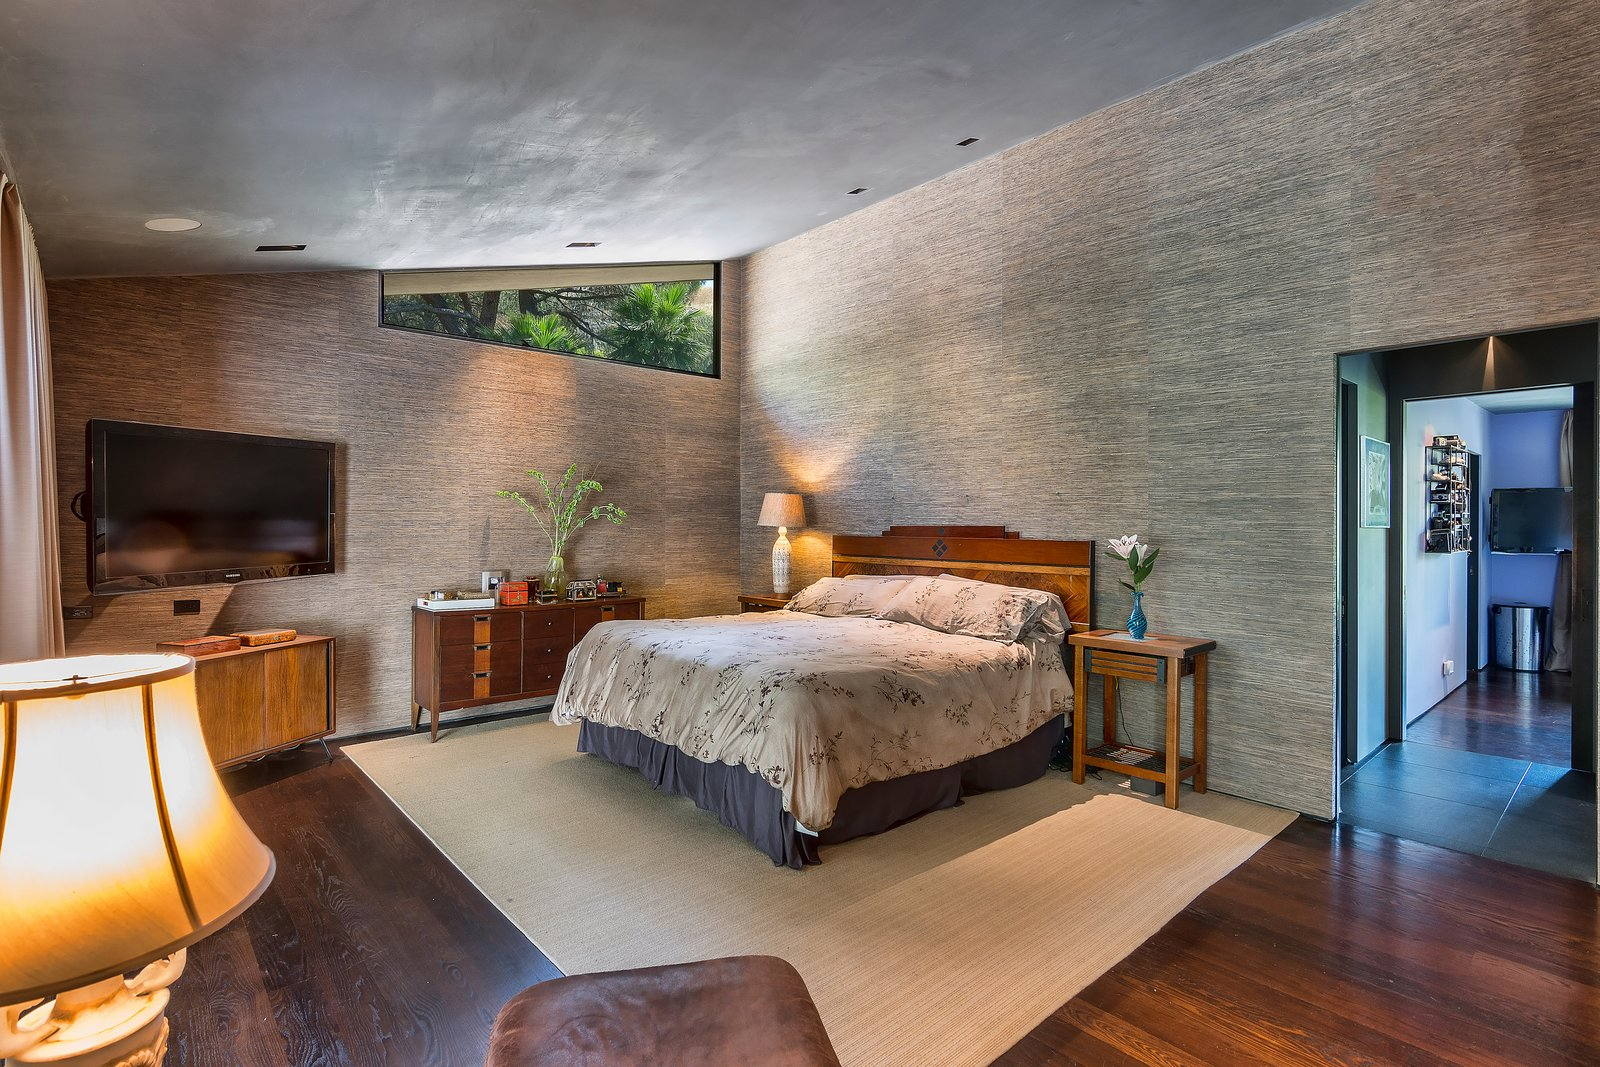 Bedroom, Recessed Lighting, Bed, Night Stands, Medium Hardwood Floor, Dark Hardwood Floor, and Dresser  Photo 7 of 14 in John Legend and Chrissy Teigen's Former Midcentury Home in the Hollywood Hills Is For Sale